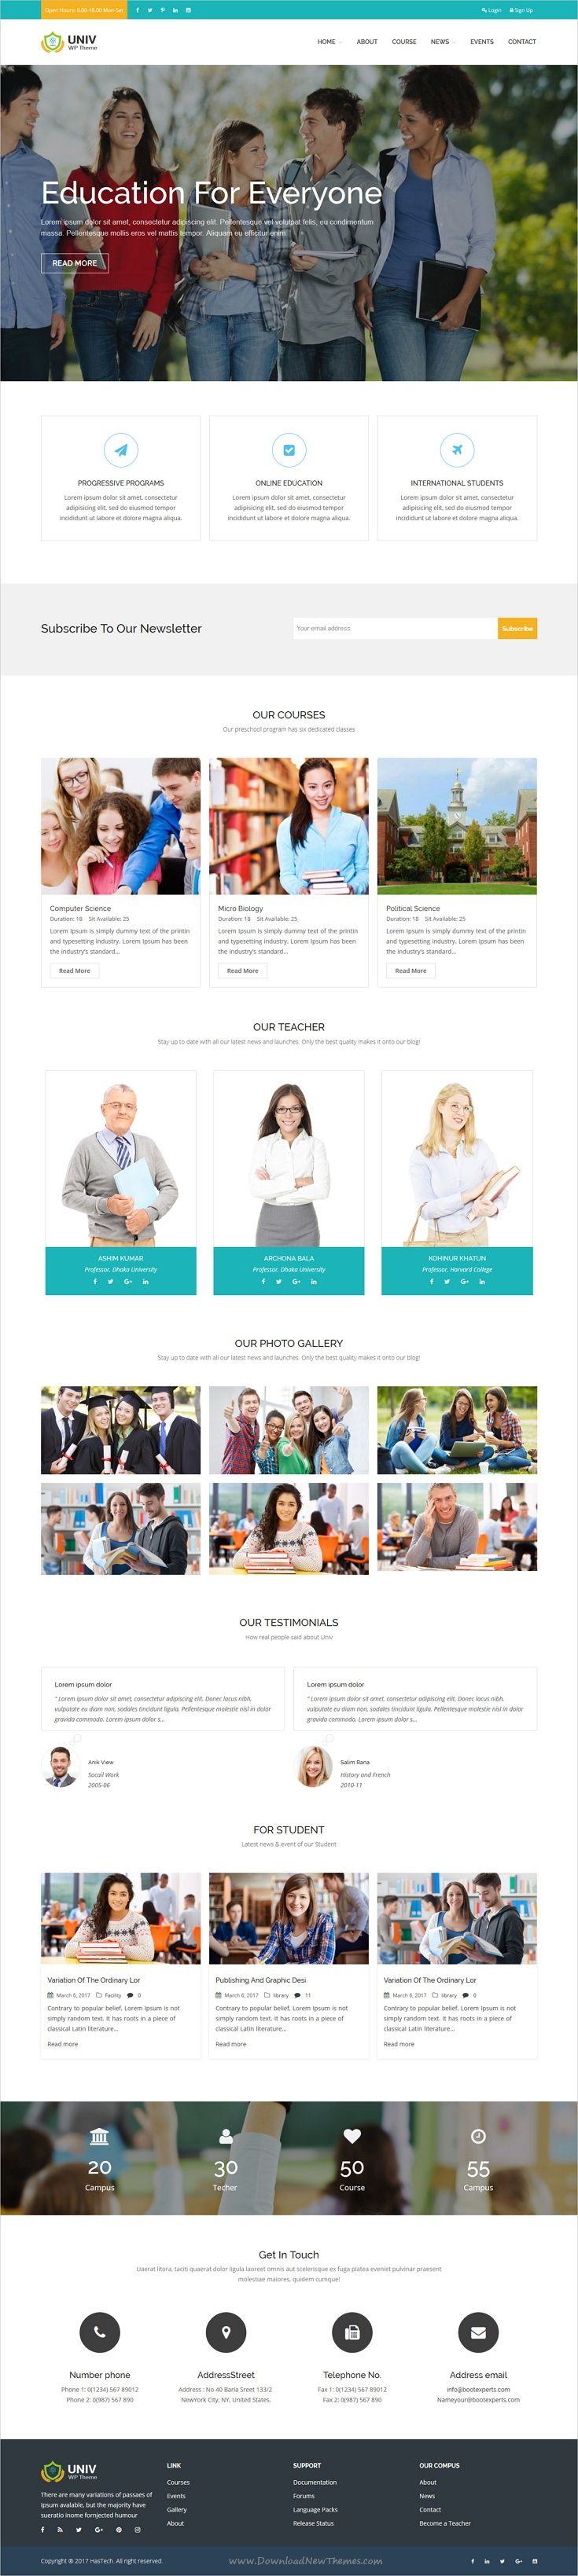 Univ is an awesome design responsive #WordPress theme for #academy, #campus, school, e-learning portal or any educational institutions website download now➩ https://themeforest.net/item/univ-education-wordpress-theme/19659022?ref=Datasata